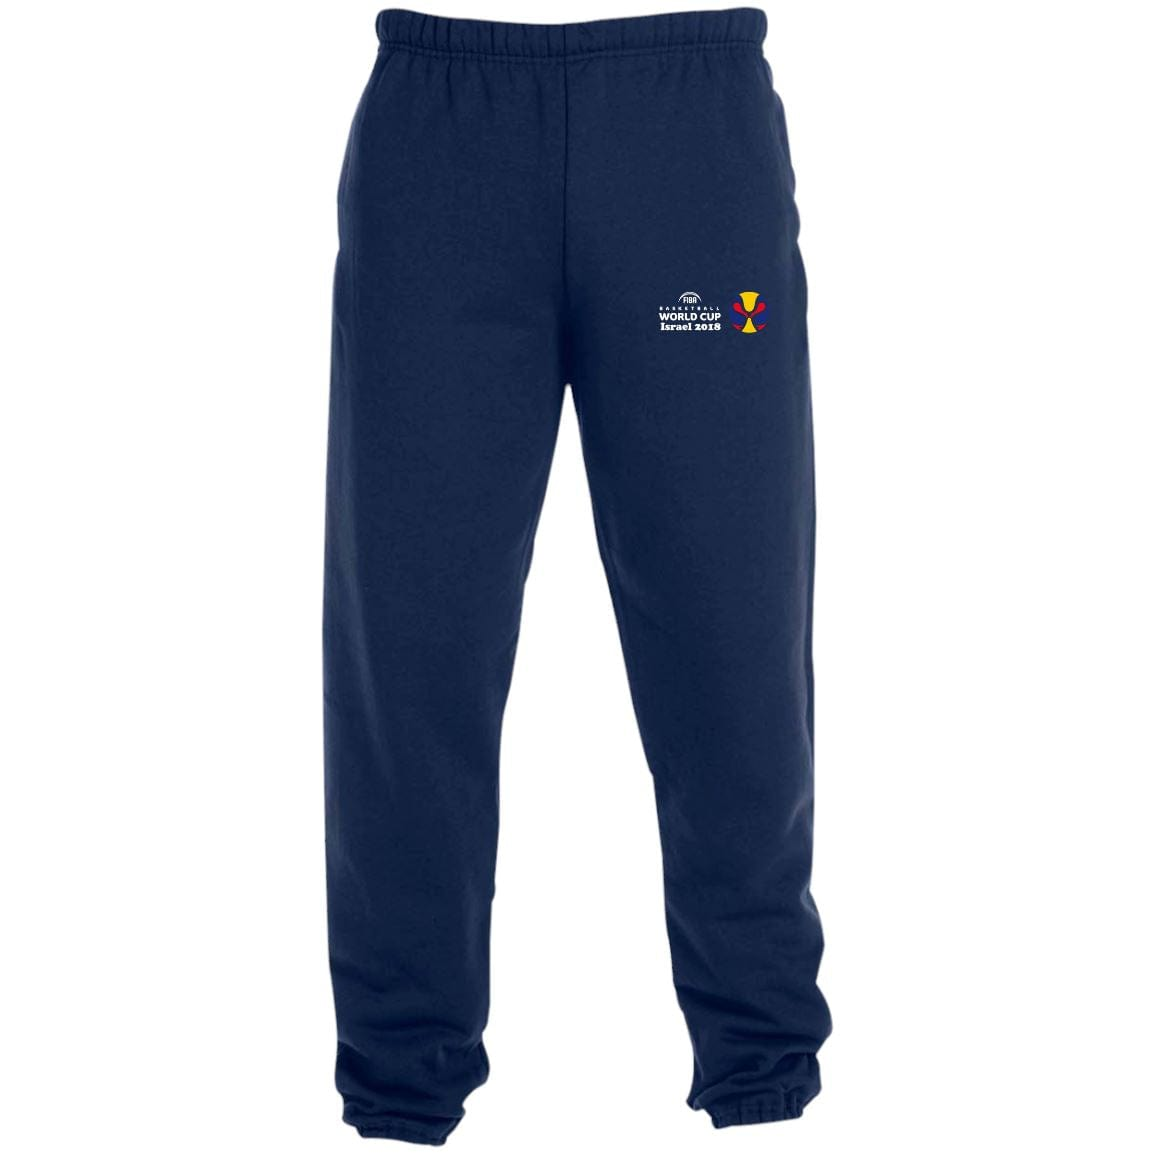 World Cup Israel Basketball Sweatpants with Pockets Pants Black S